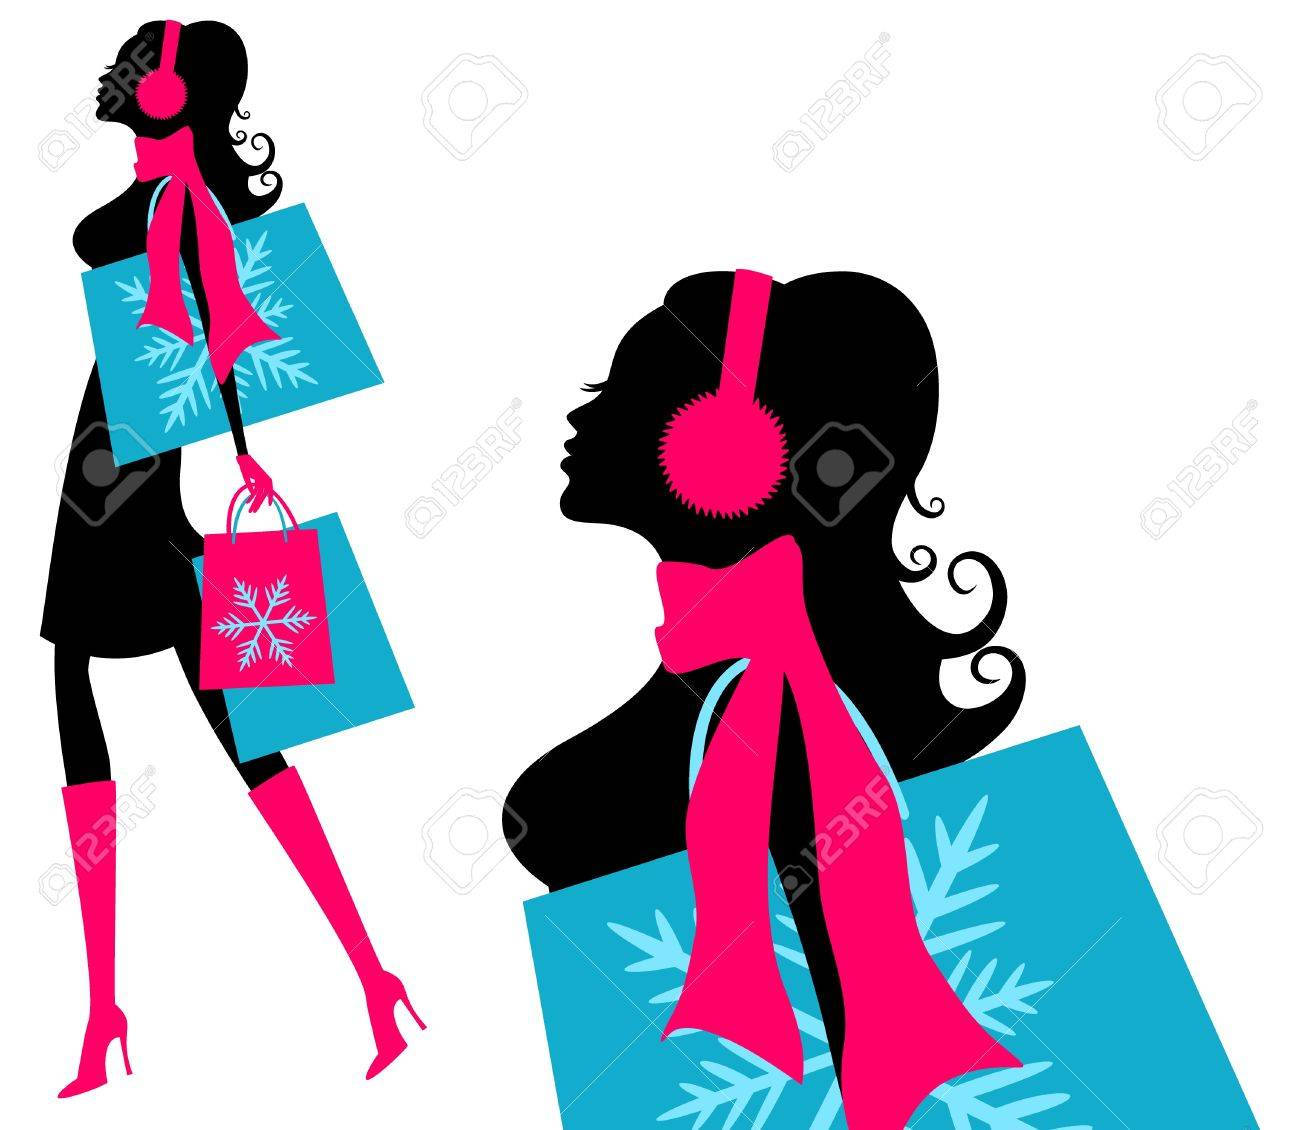 Vector illustration of a young fashionable woman holding shopping bags Stock Vector - 12394147